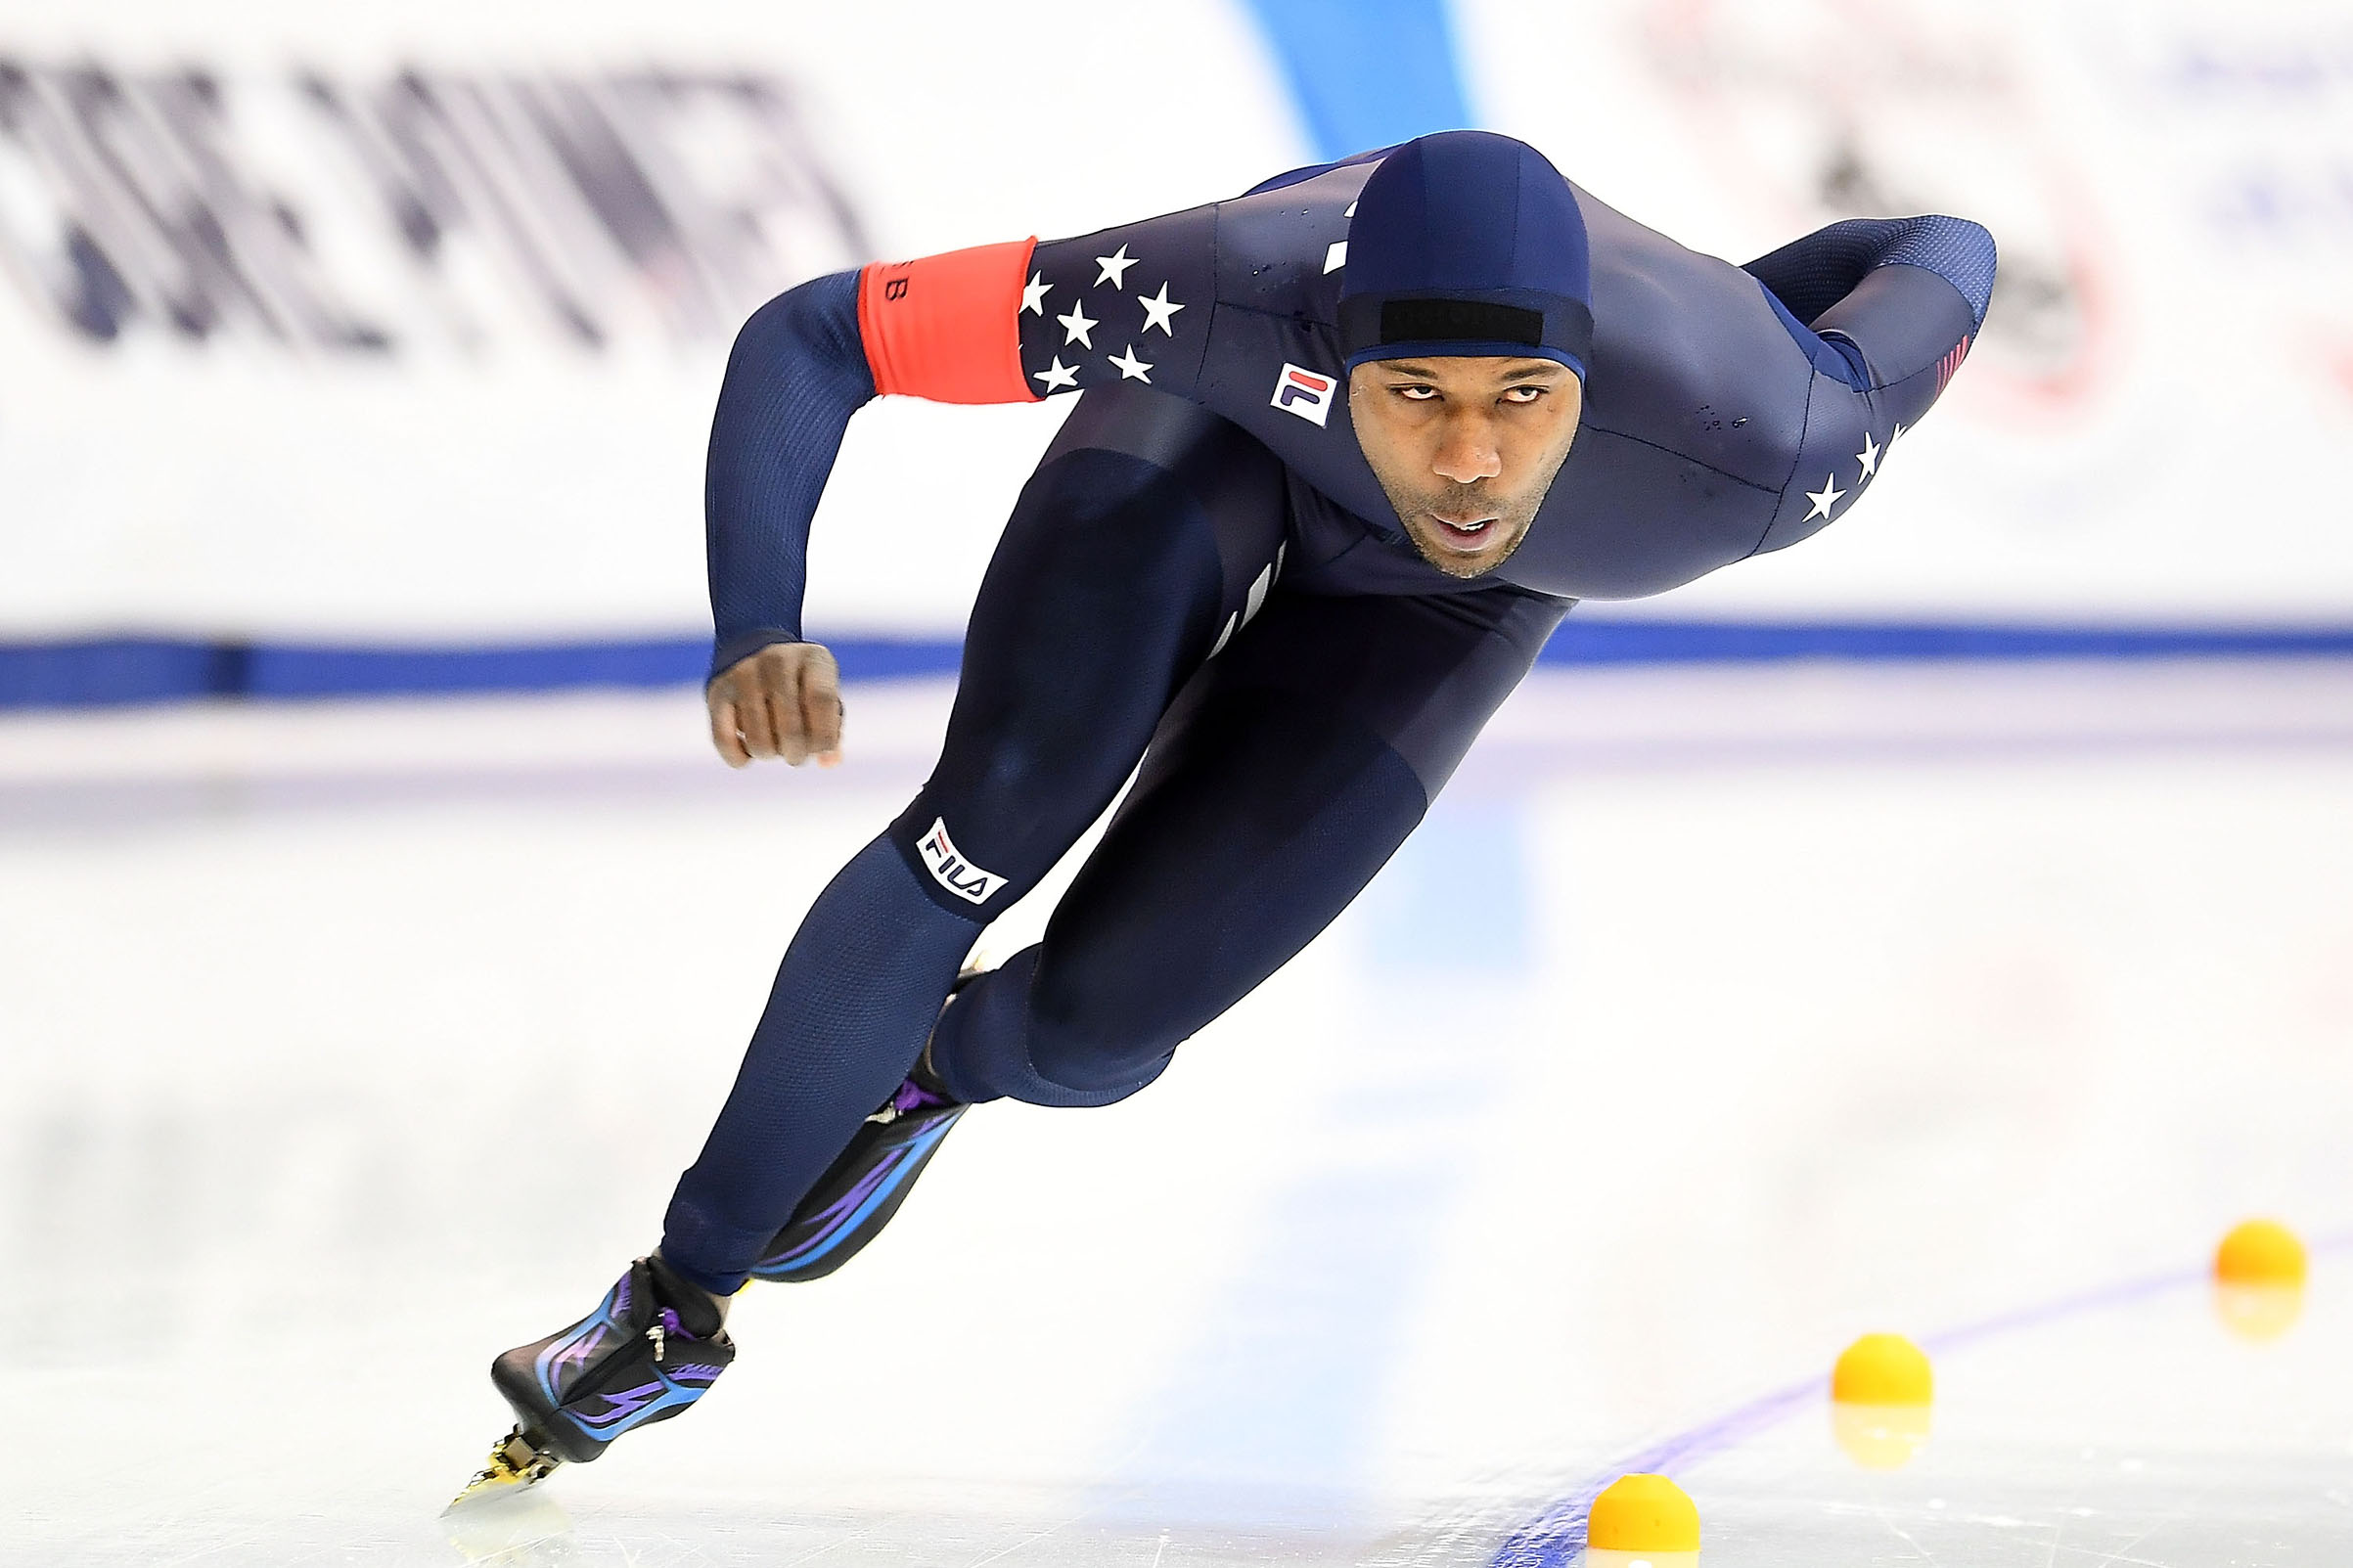 Shani Davis competes in the Men's 1500 meter event during the Long Track Speed Skating Olympic Trials at the Pettit National Ice Center in Milwaukee, on Jan. 6, 2018.